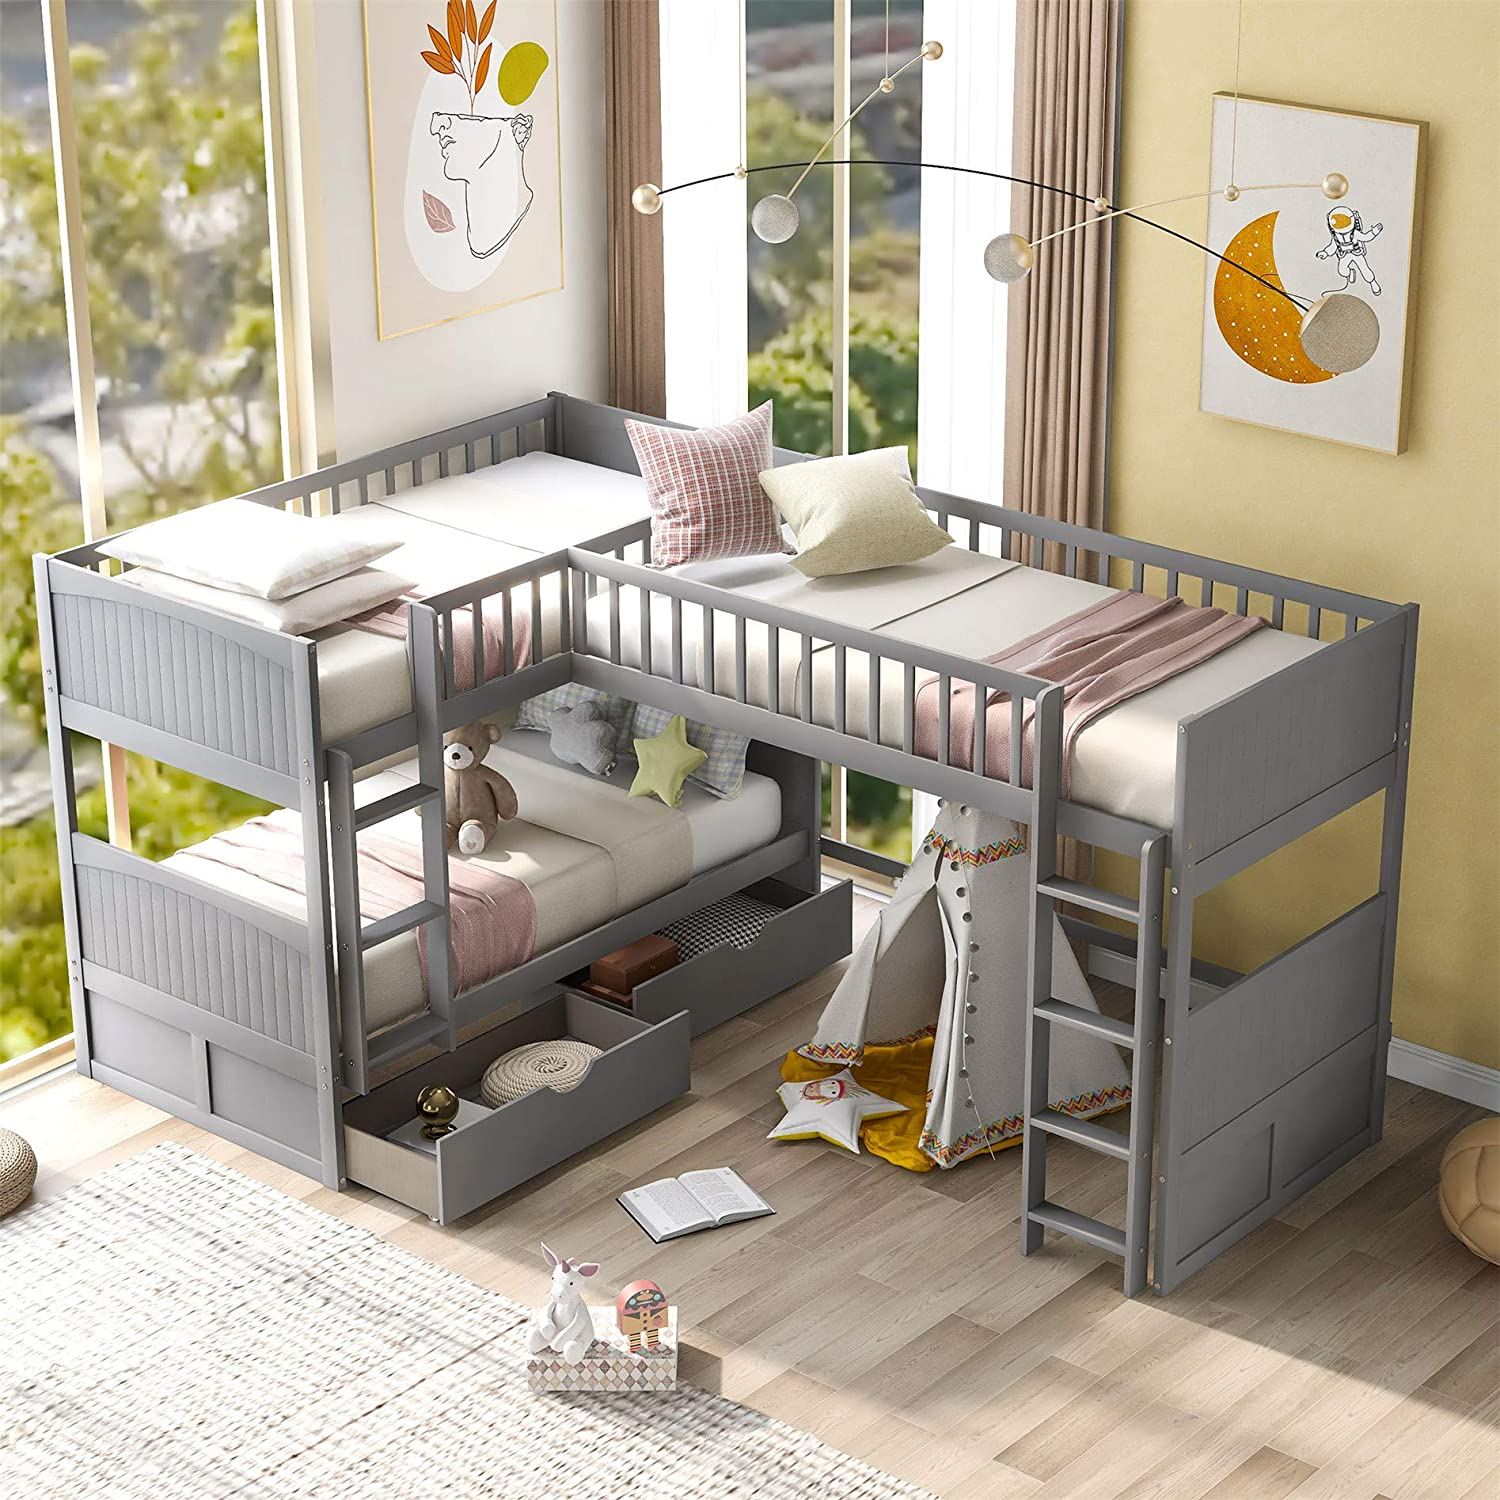 Wood shop Triple Bunk Bed with Max 52% OFF Drawers Twi 3 for L-Shaped Beds